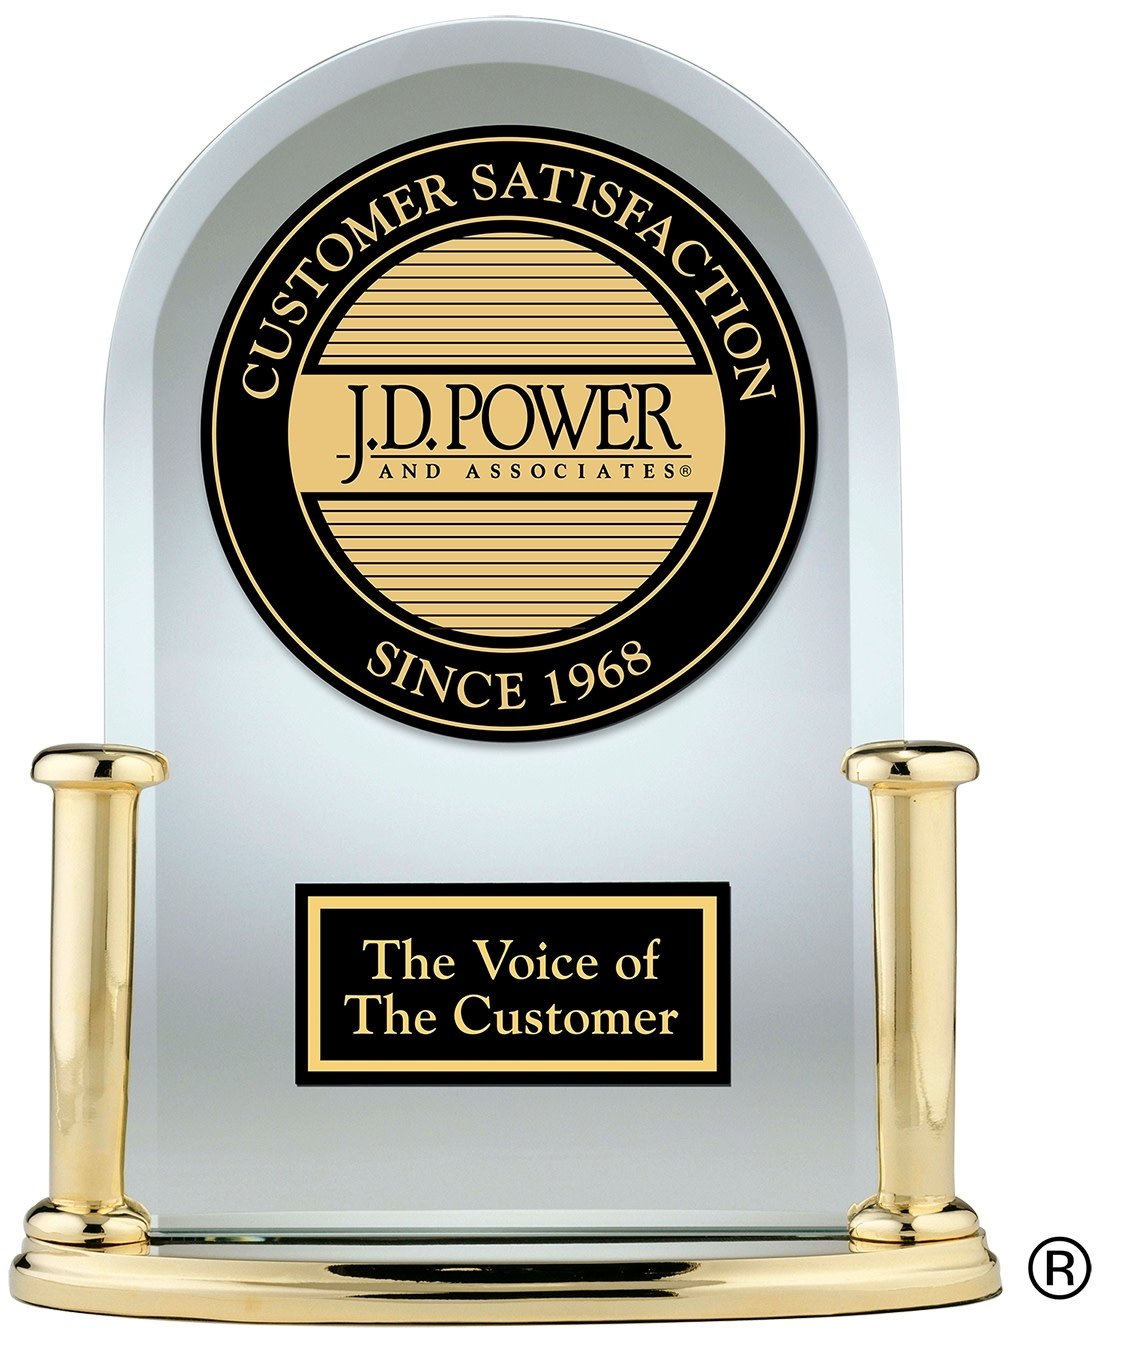 J.D. Power Trophy